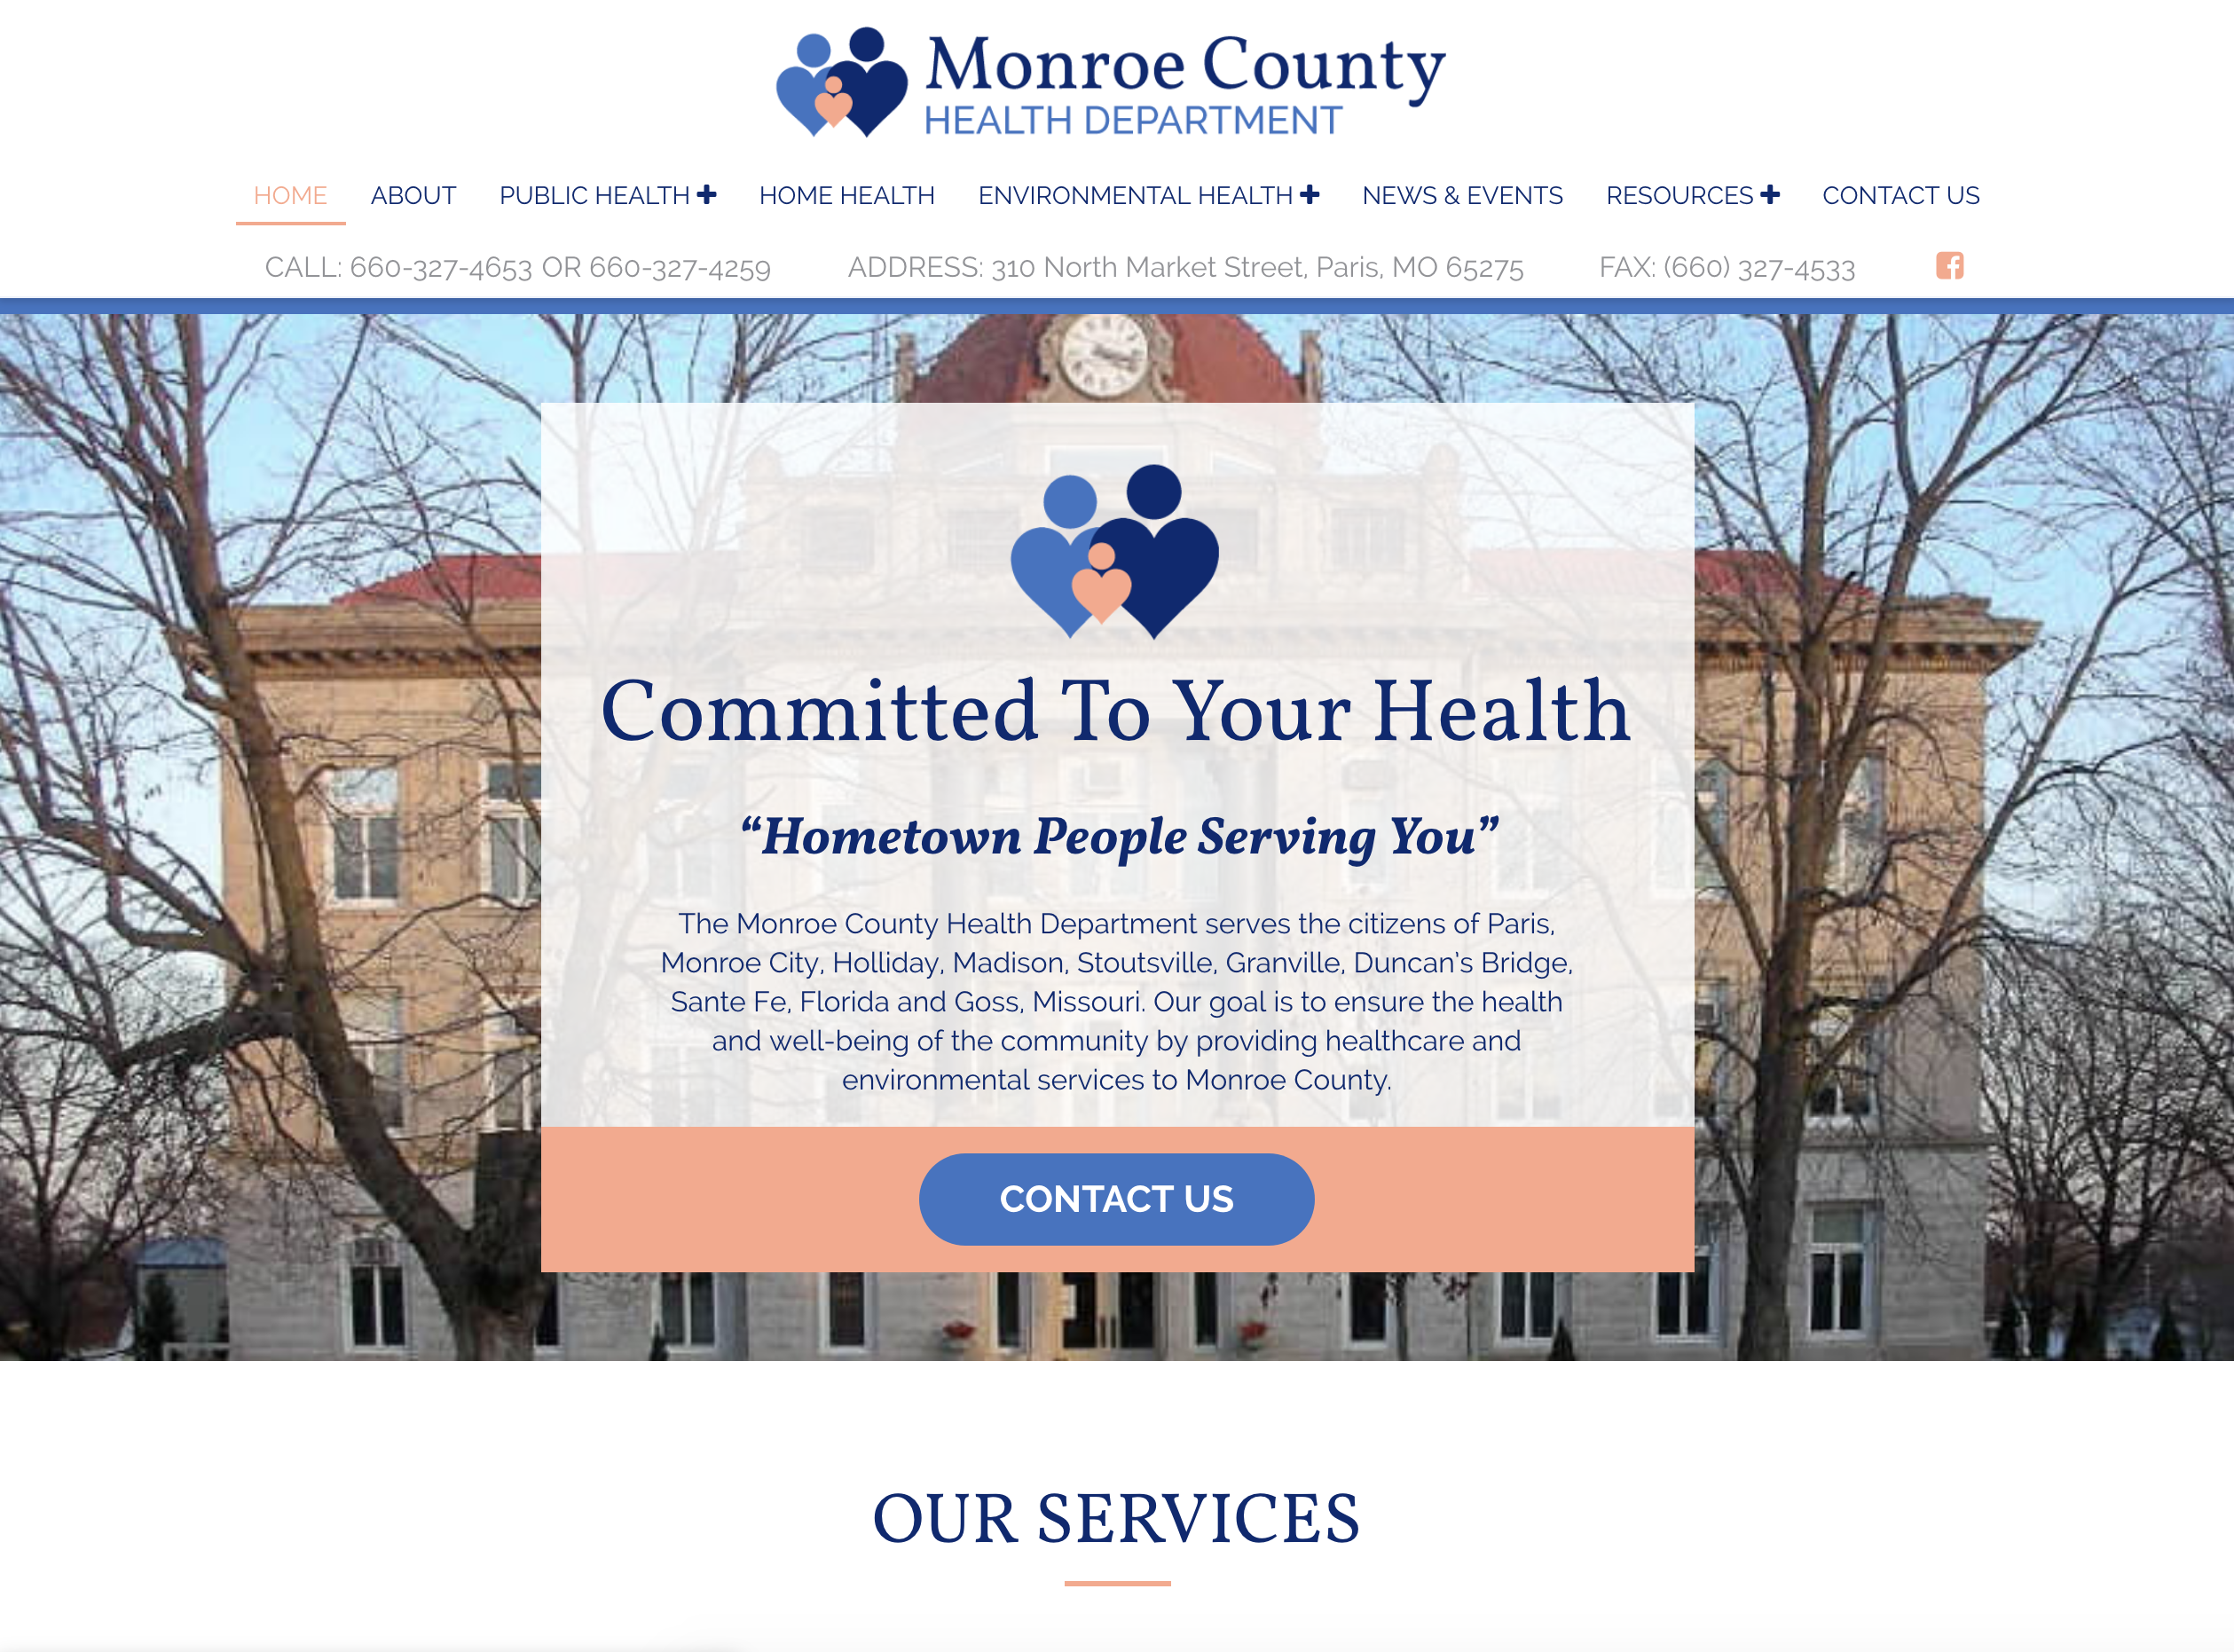 Monroe County Health Department